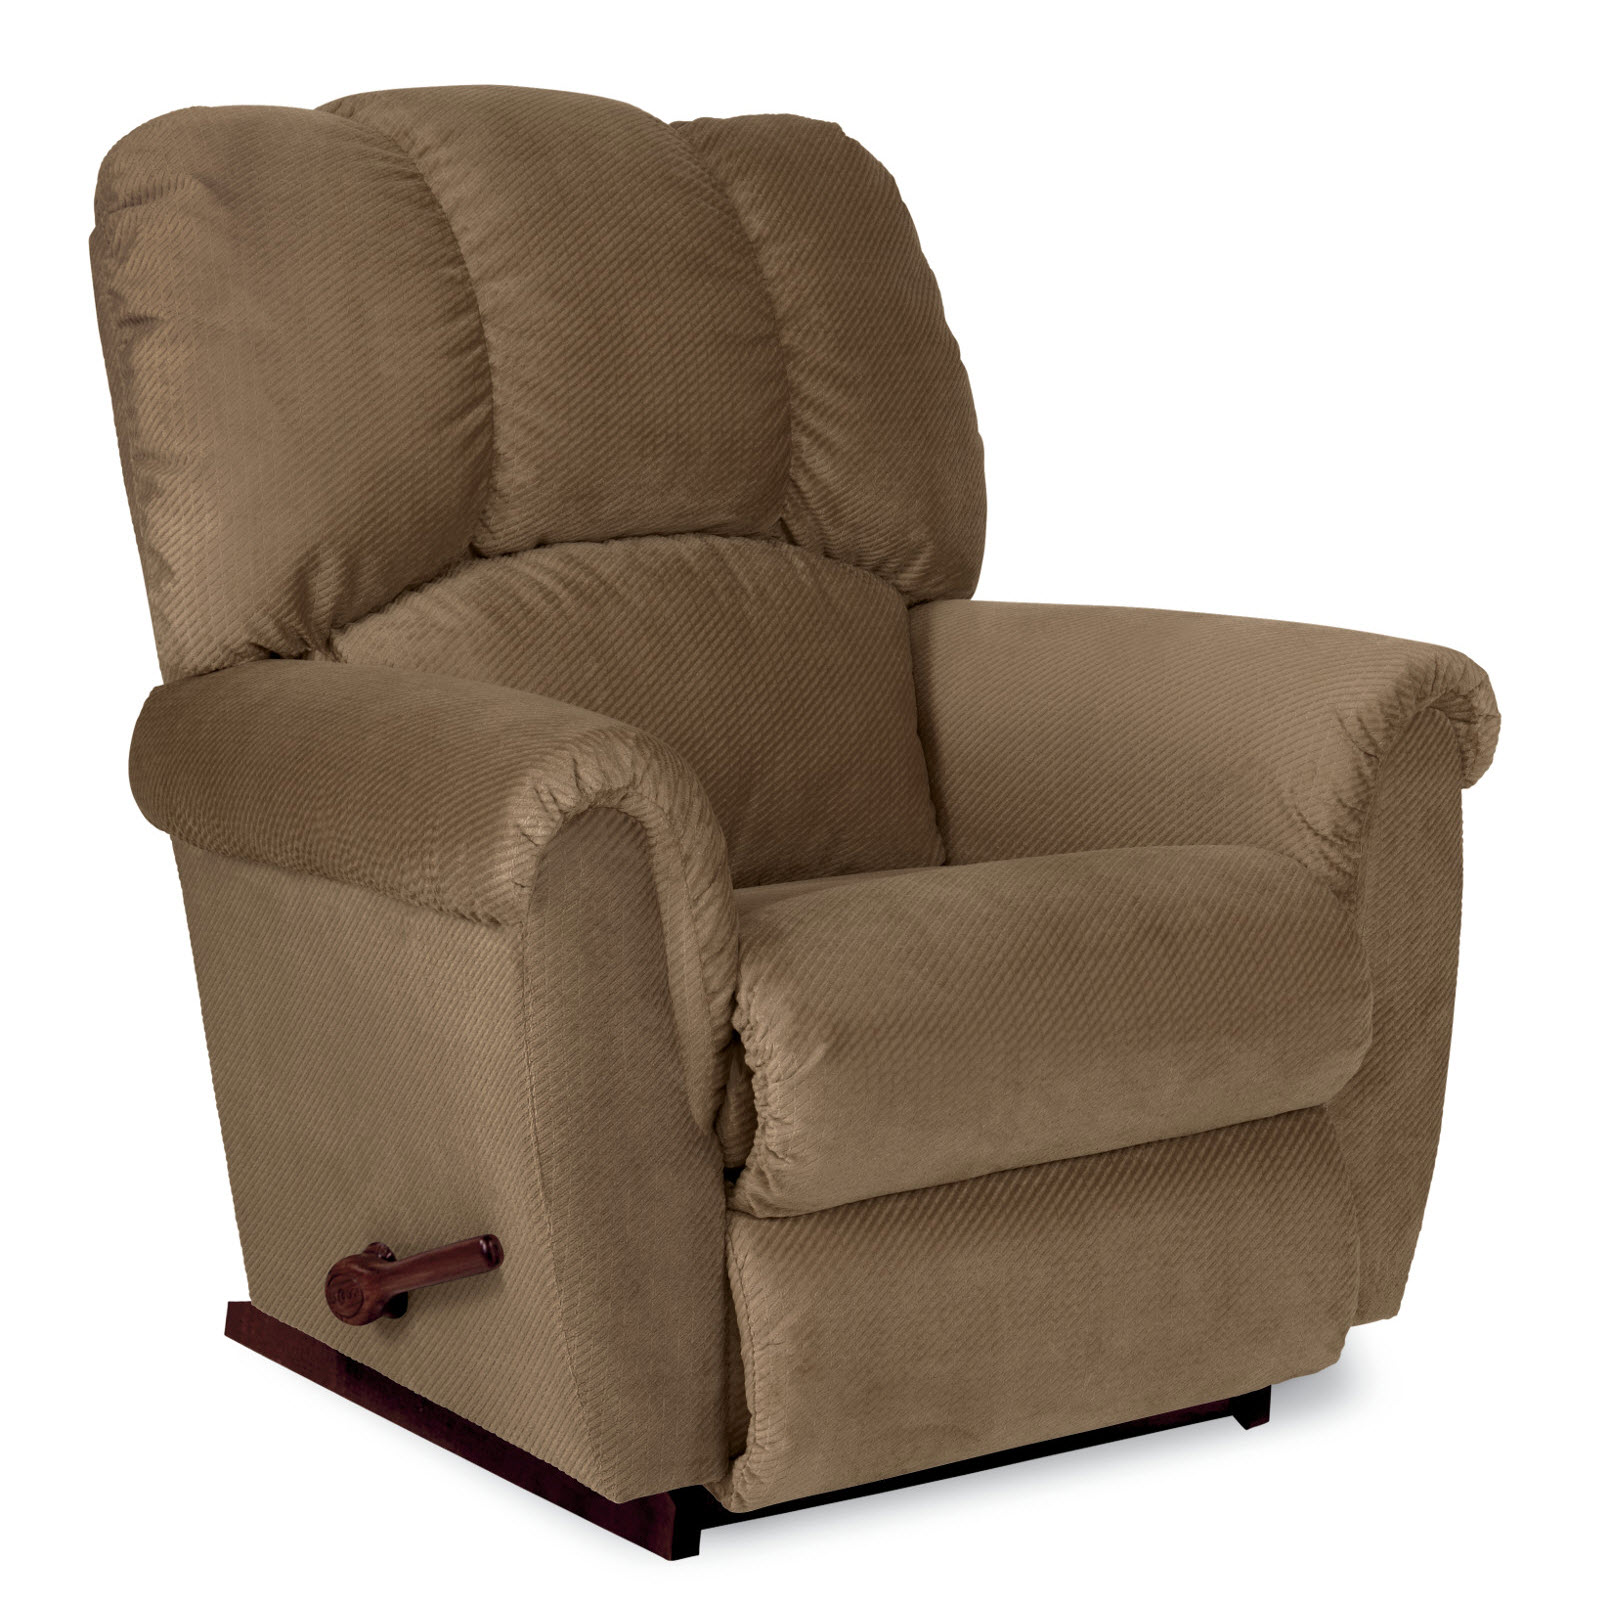 Lazy Boy Swivel Chair La Z Boy Conner Reclina Rocker Recliner Tan